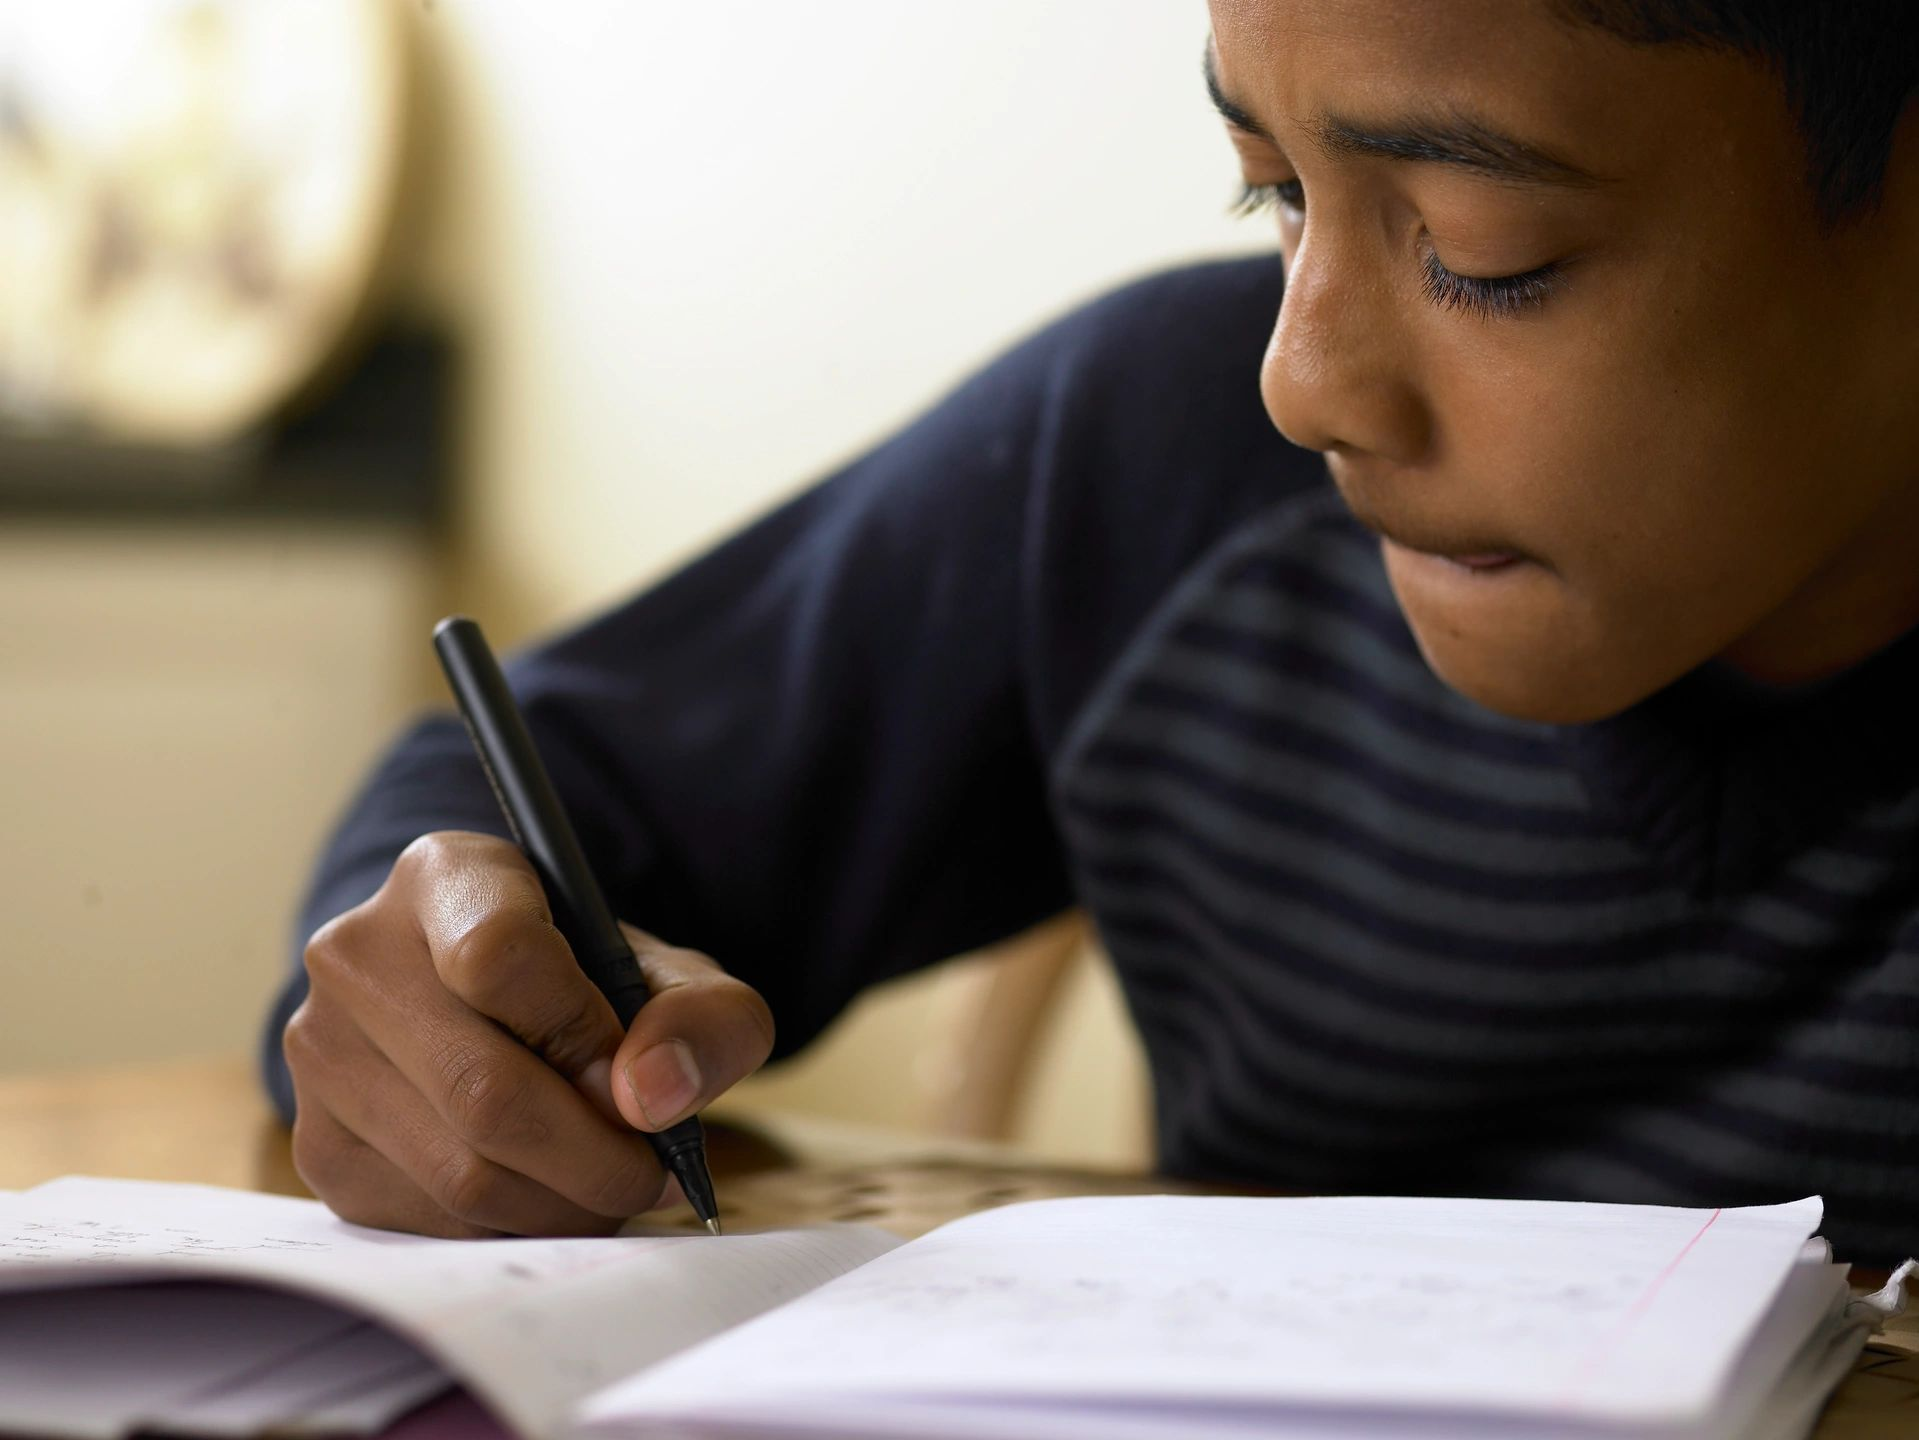 Strategies to help students with homework